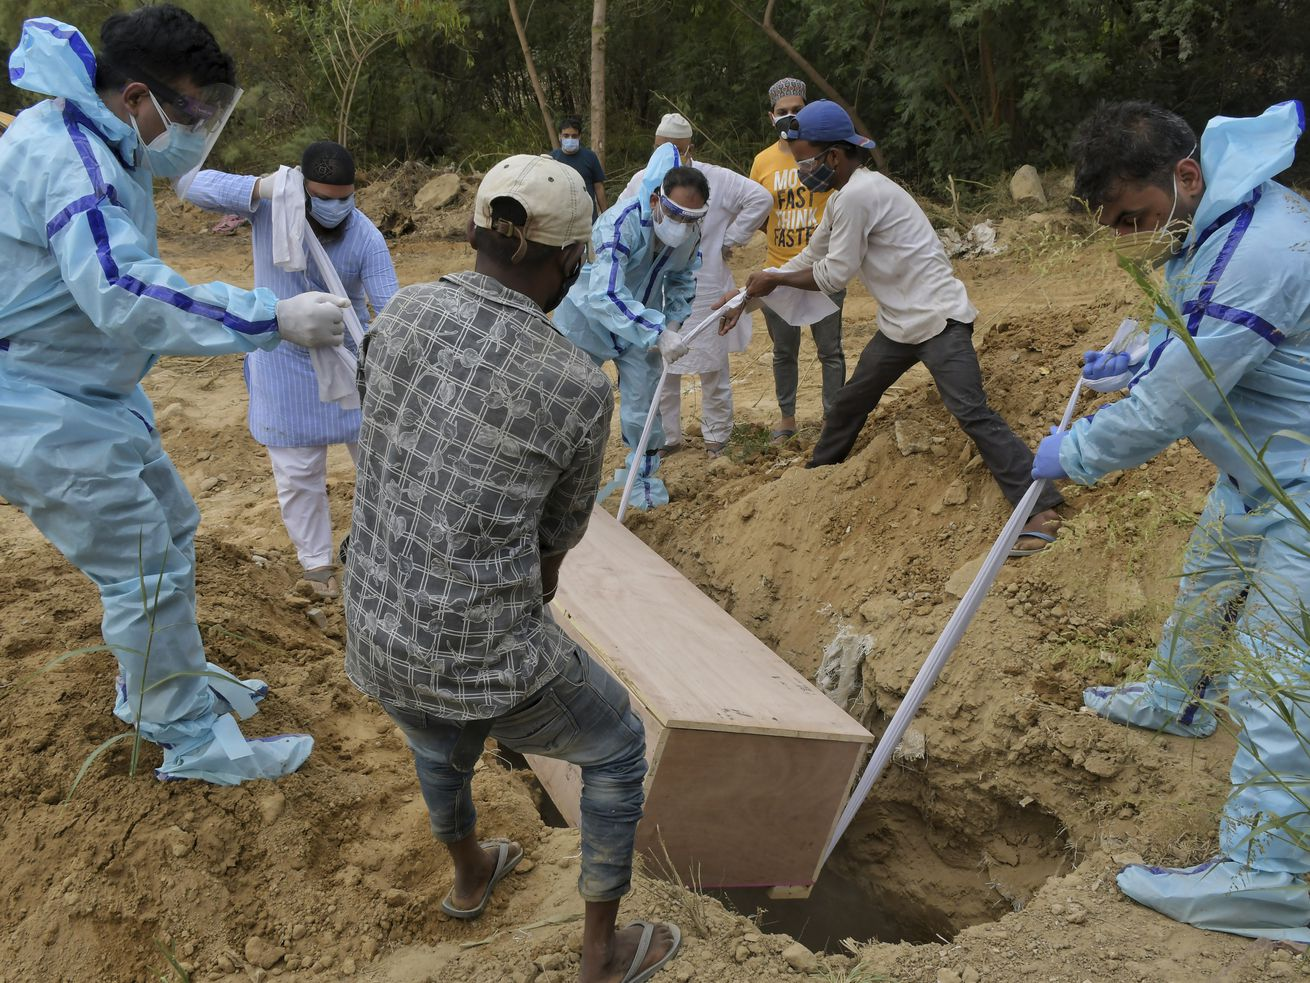 Relatives bury the body of a COVID-19 victim at a graveyard in New Delhi, India, Tuesday, May 4, 2021.